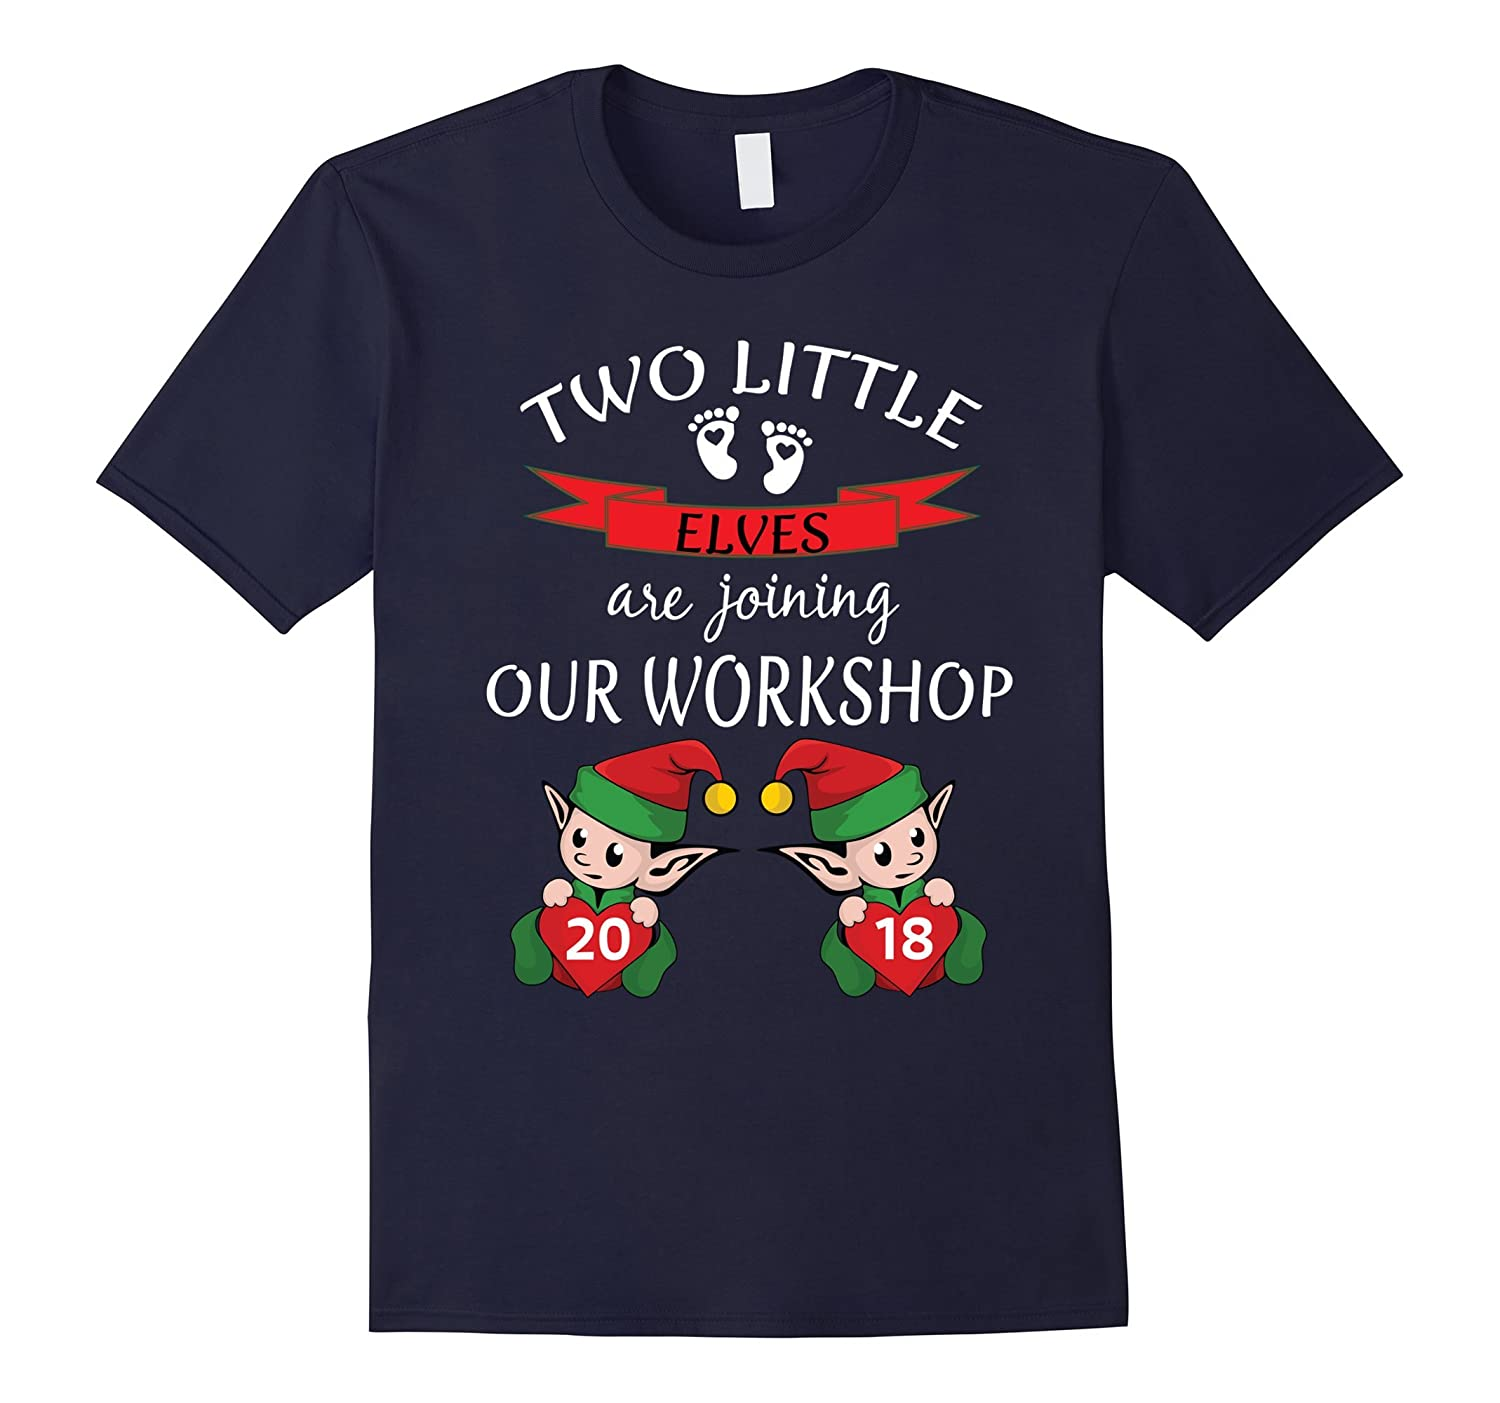 2018 Cute Twins Christmas Pregnancy Announcement Shirt Baby-ANZ